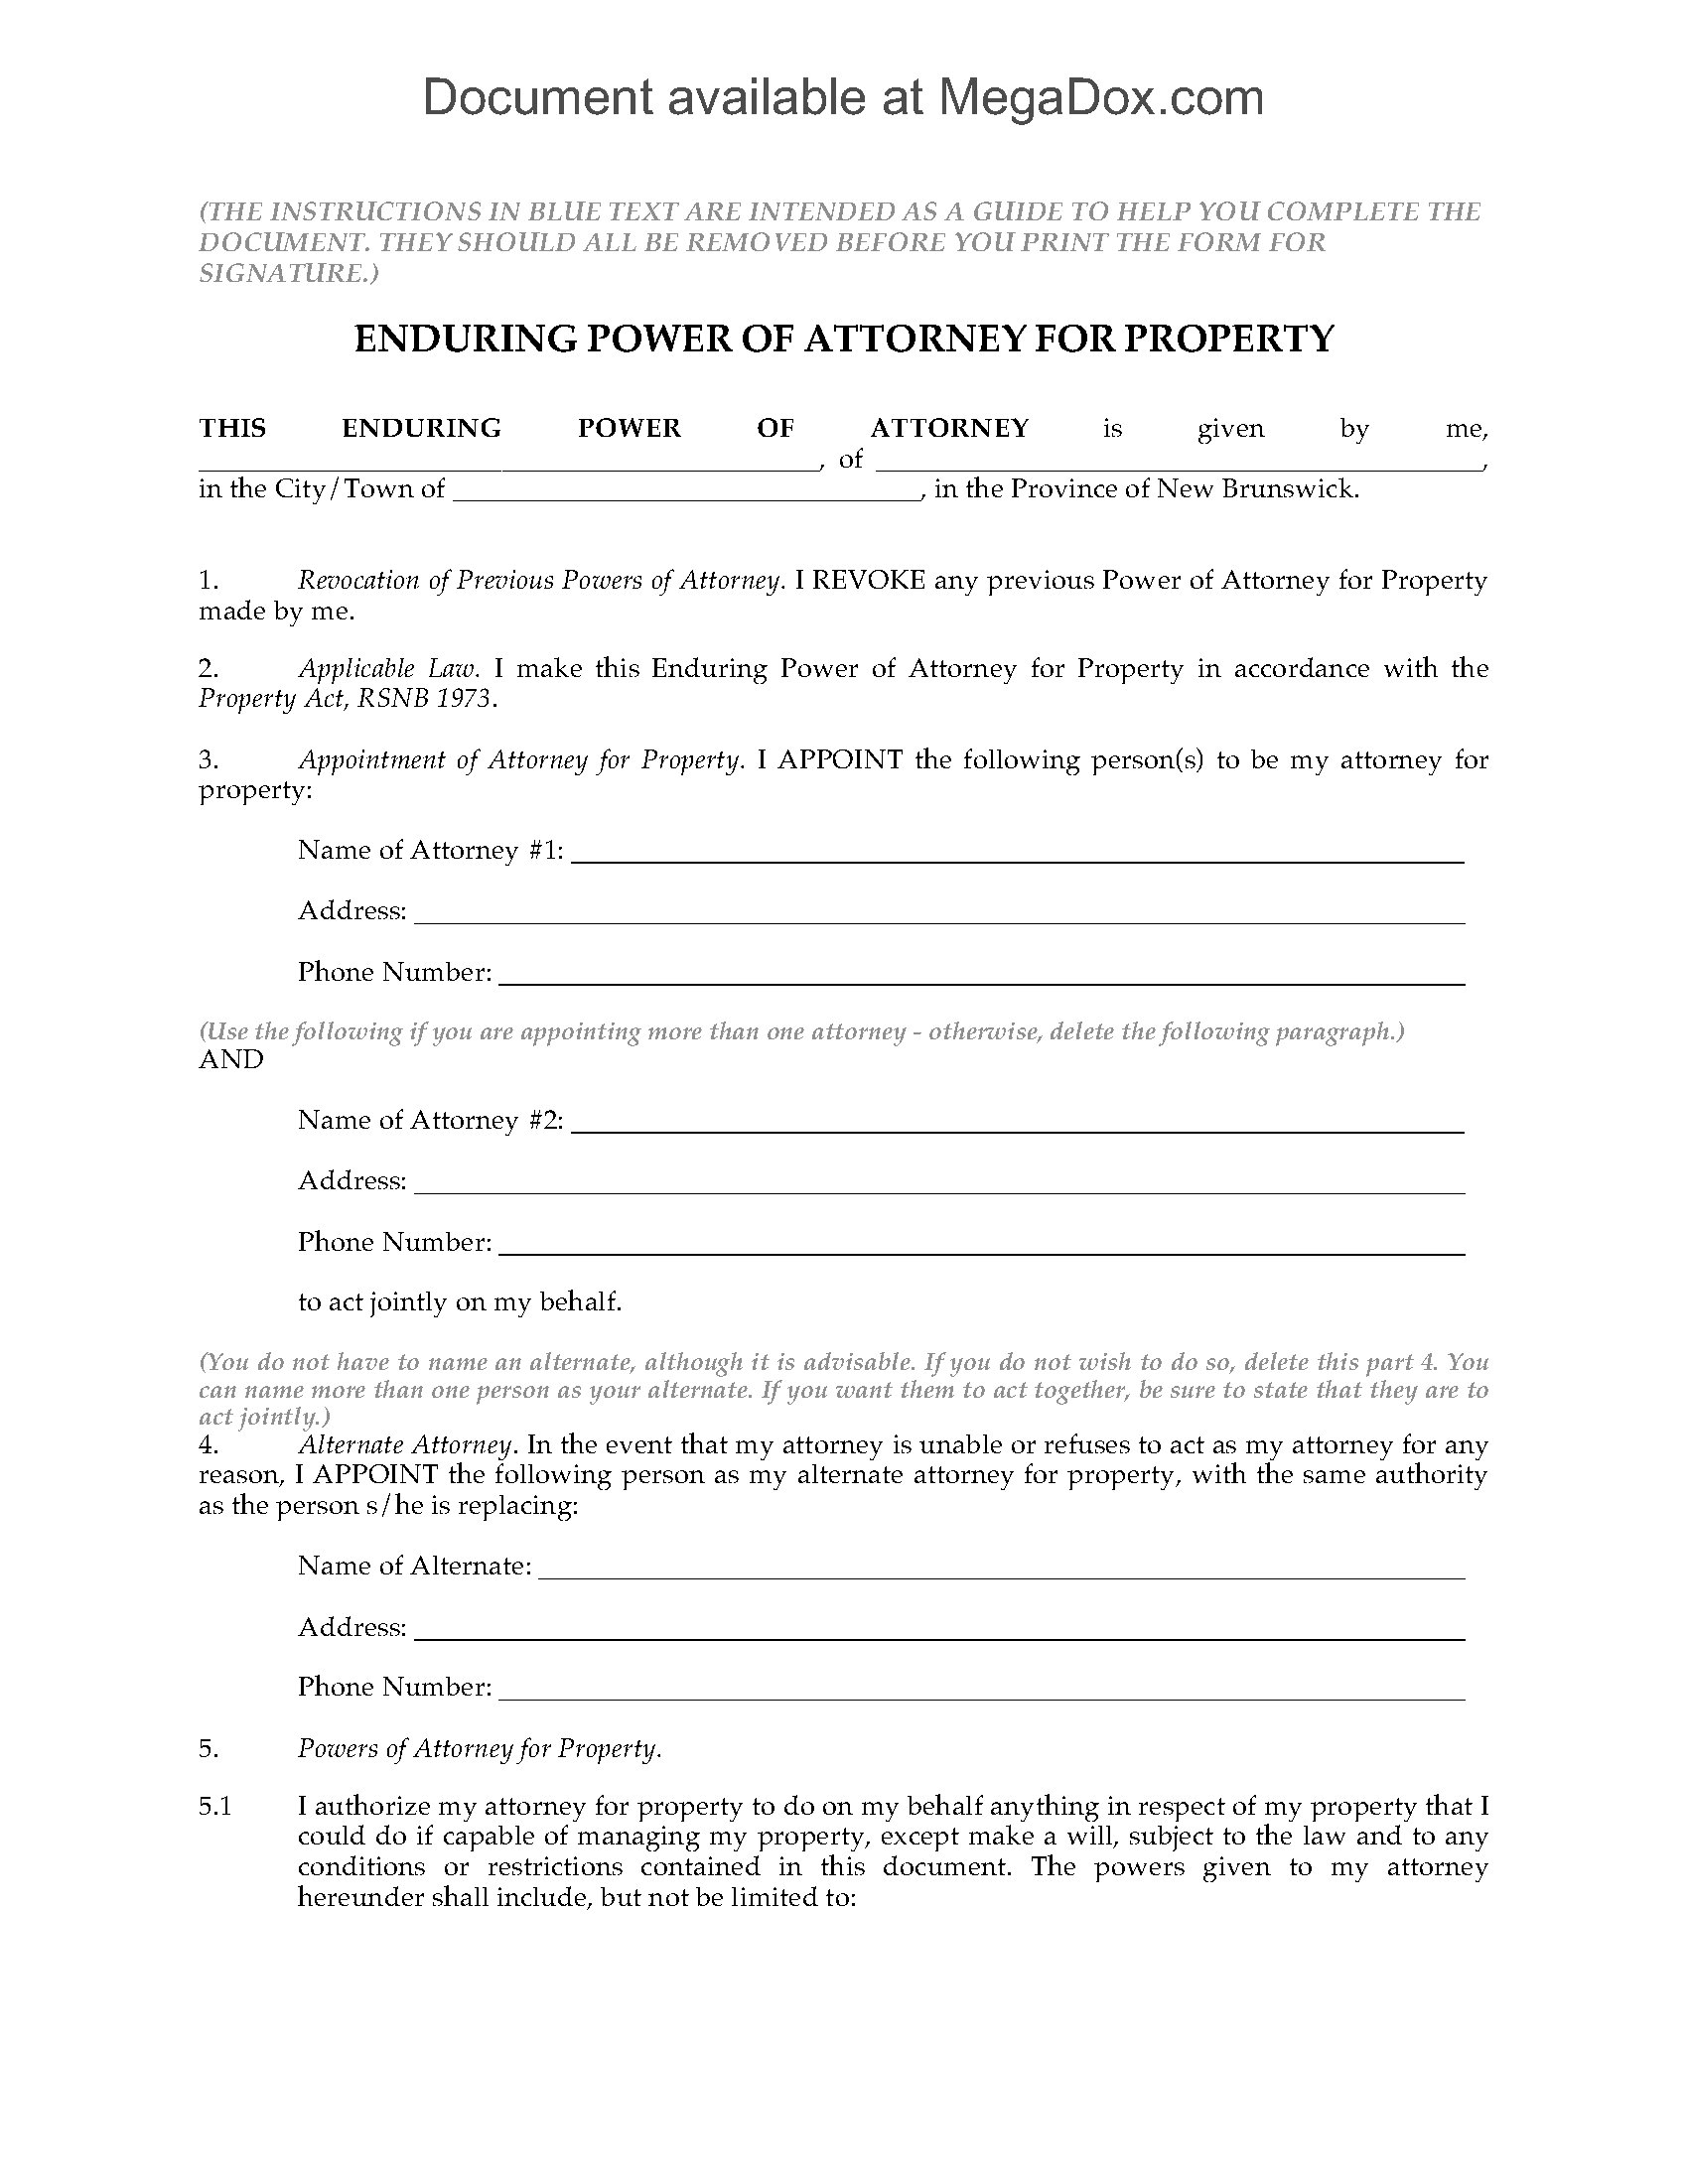 enduring power of attorney form  New Brunswick Enduring Power of Attorney for Property